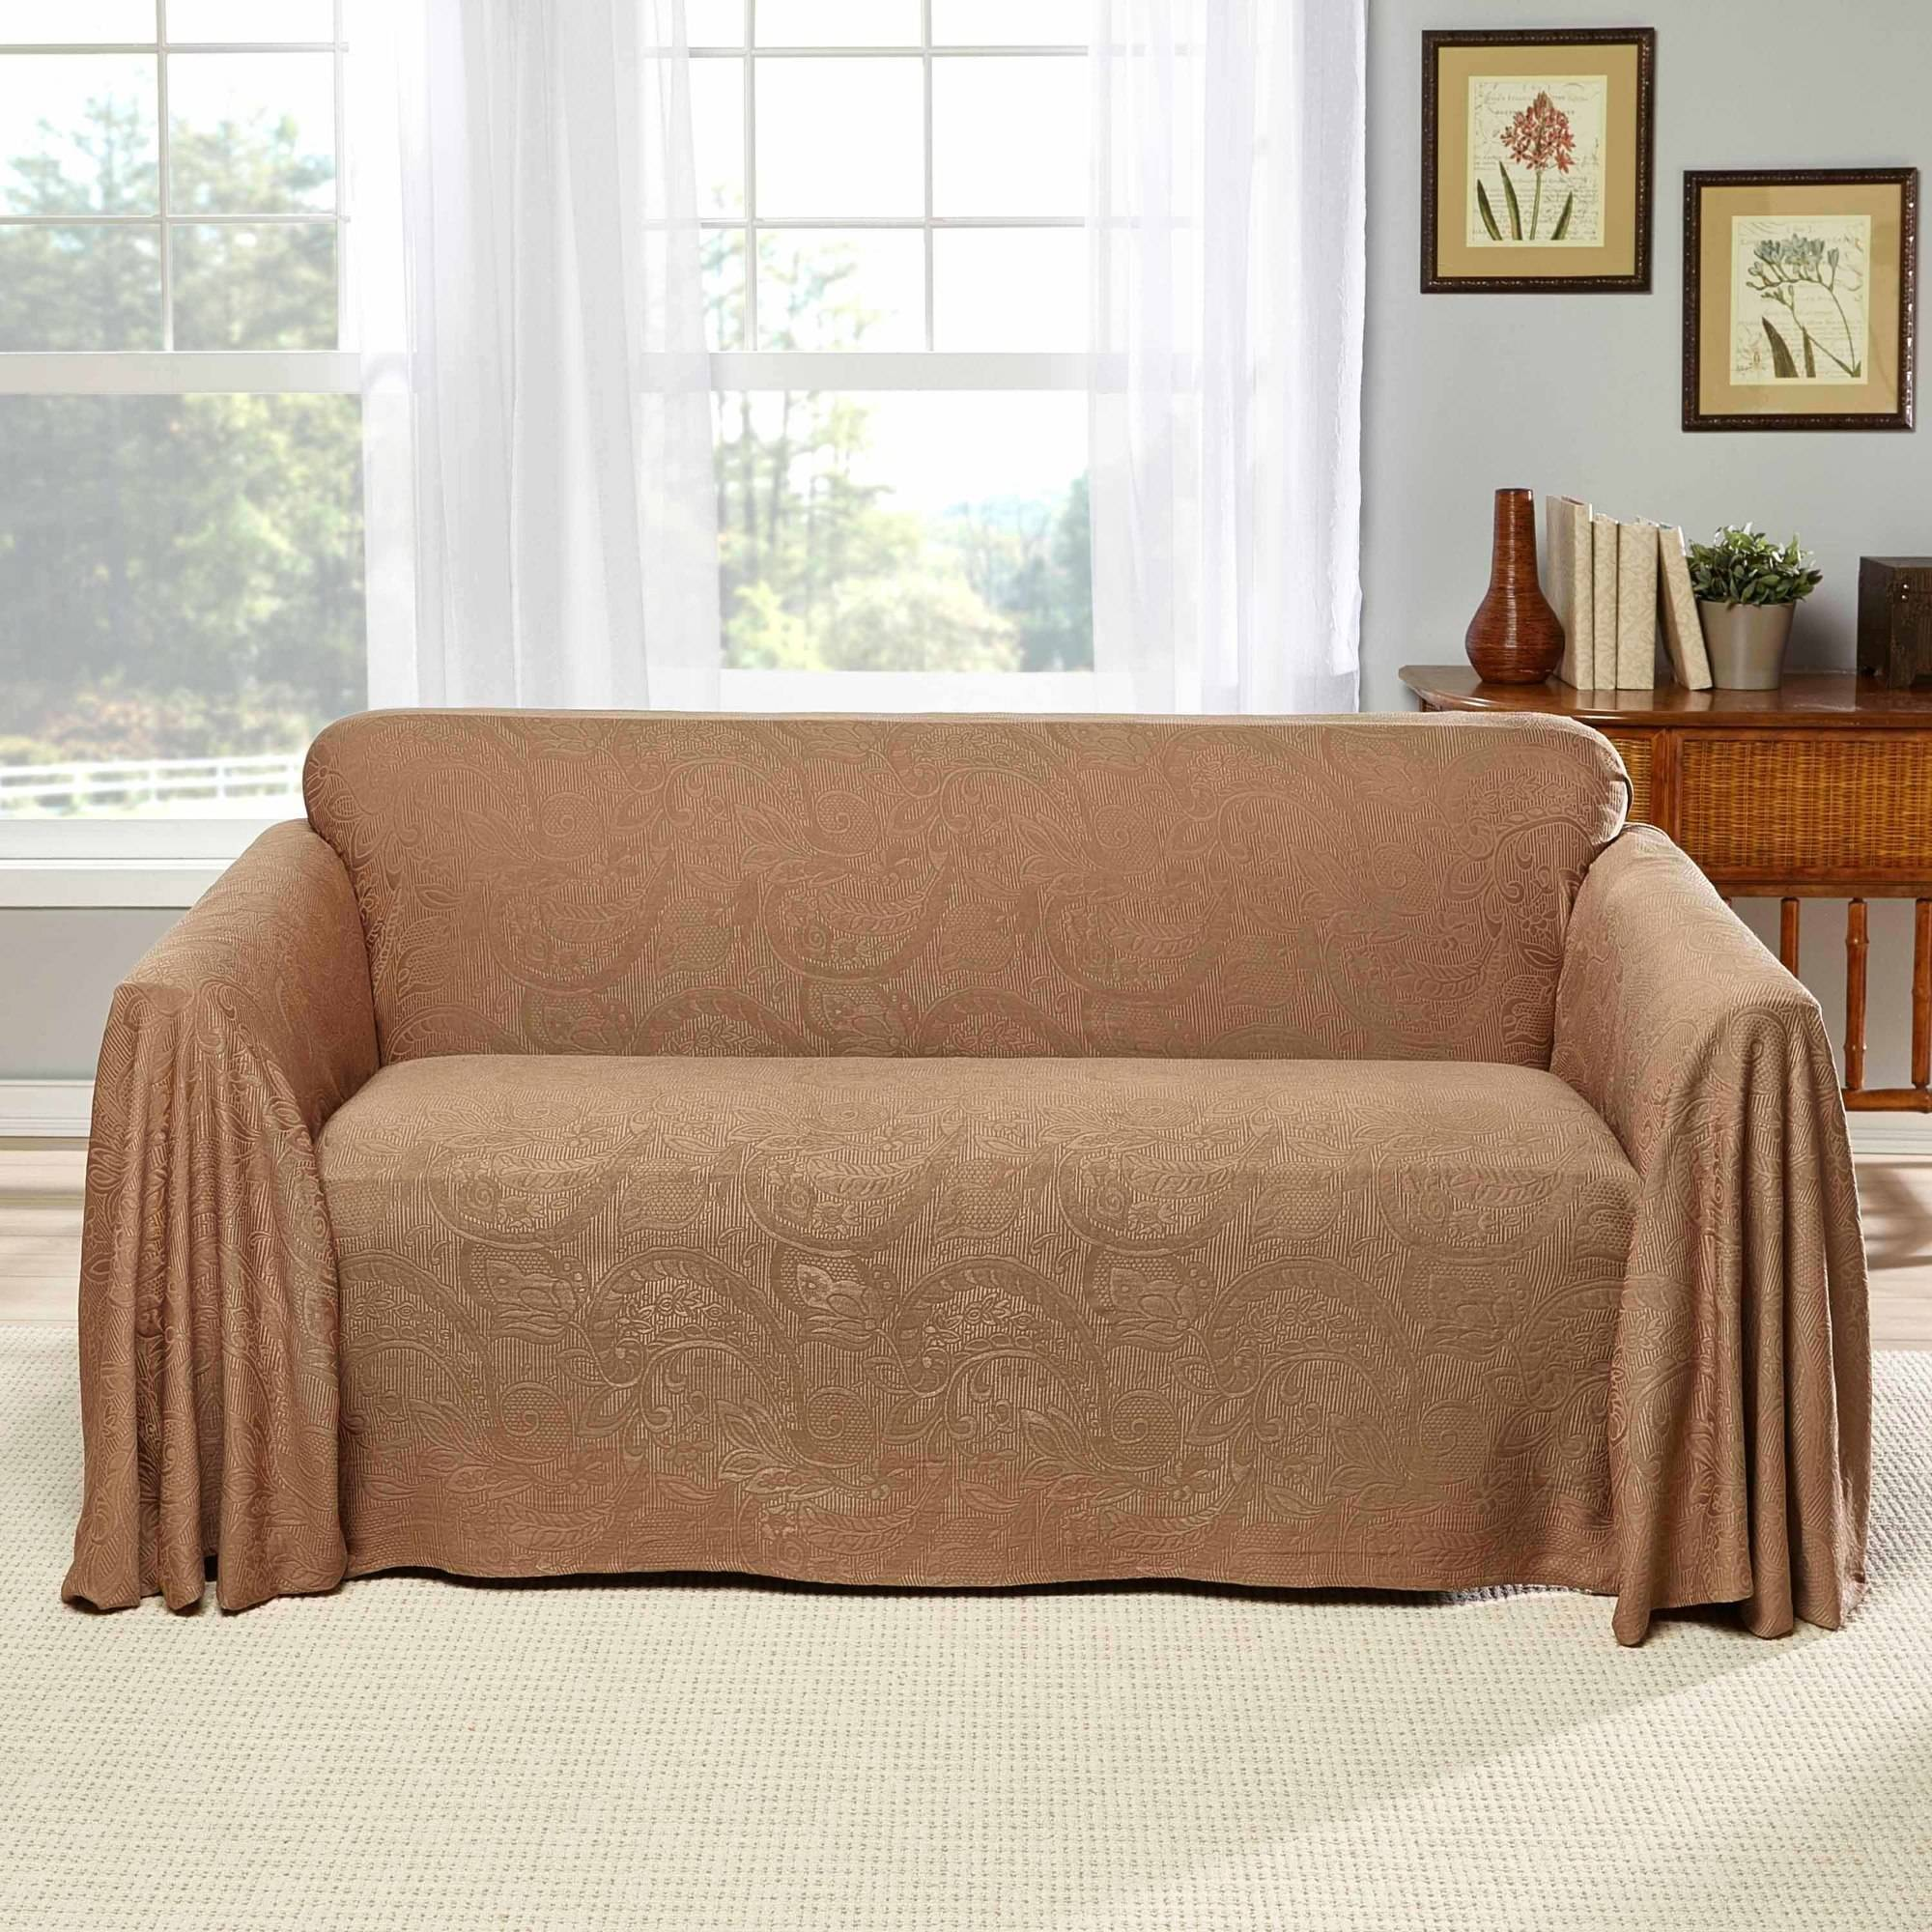 Belle Maison Alexandria Furniture Throw Walmart